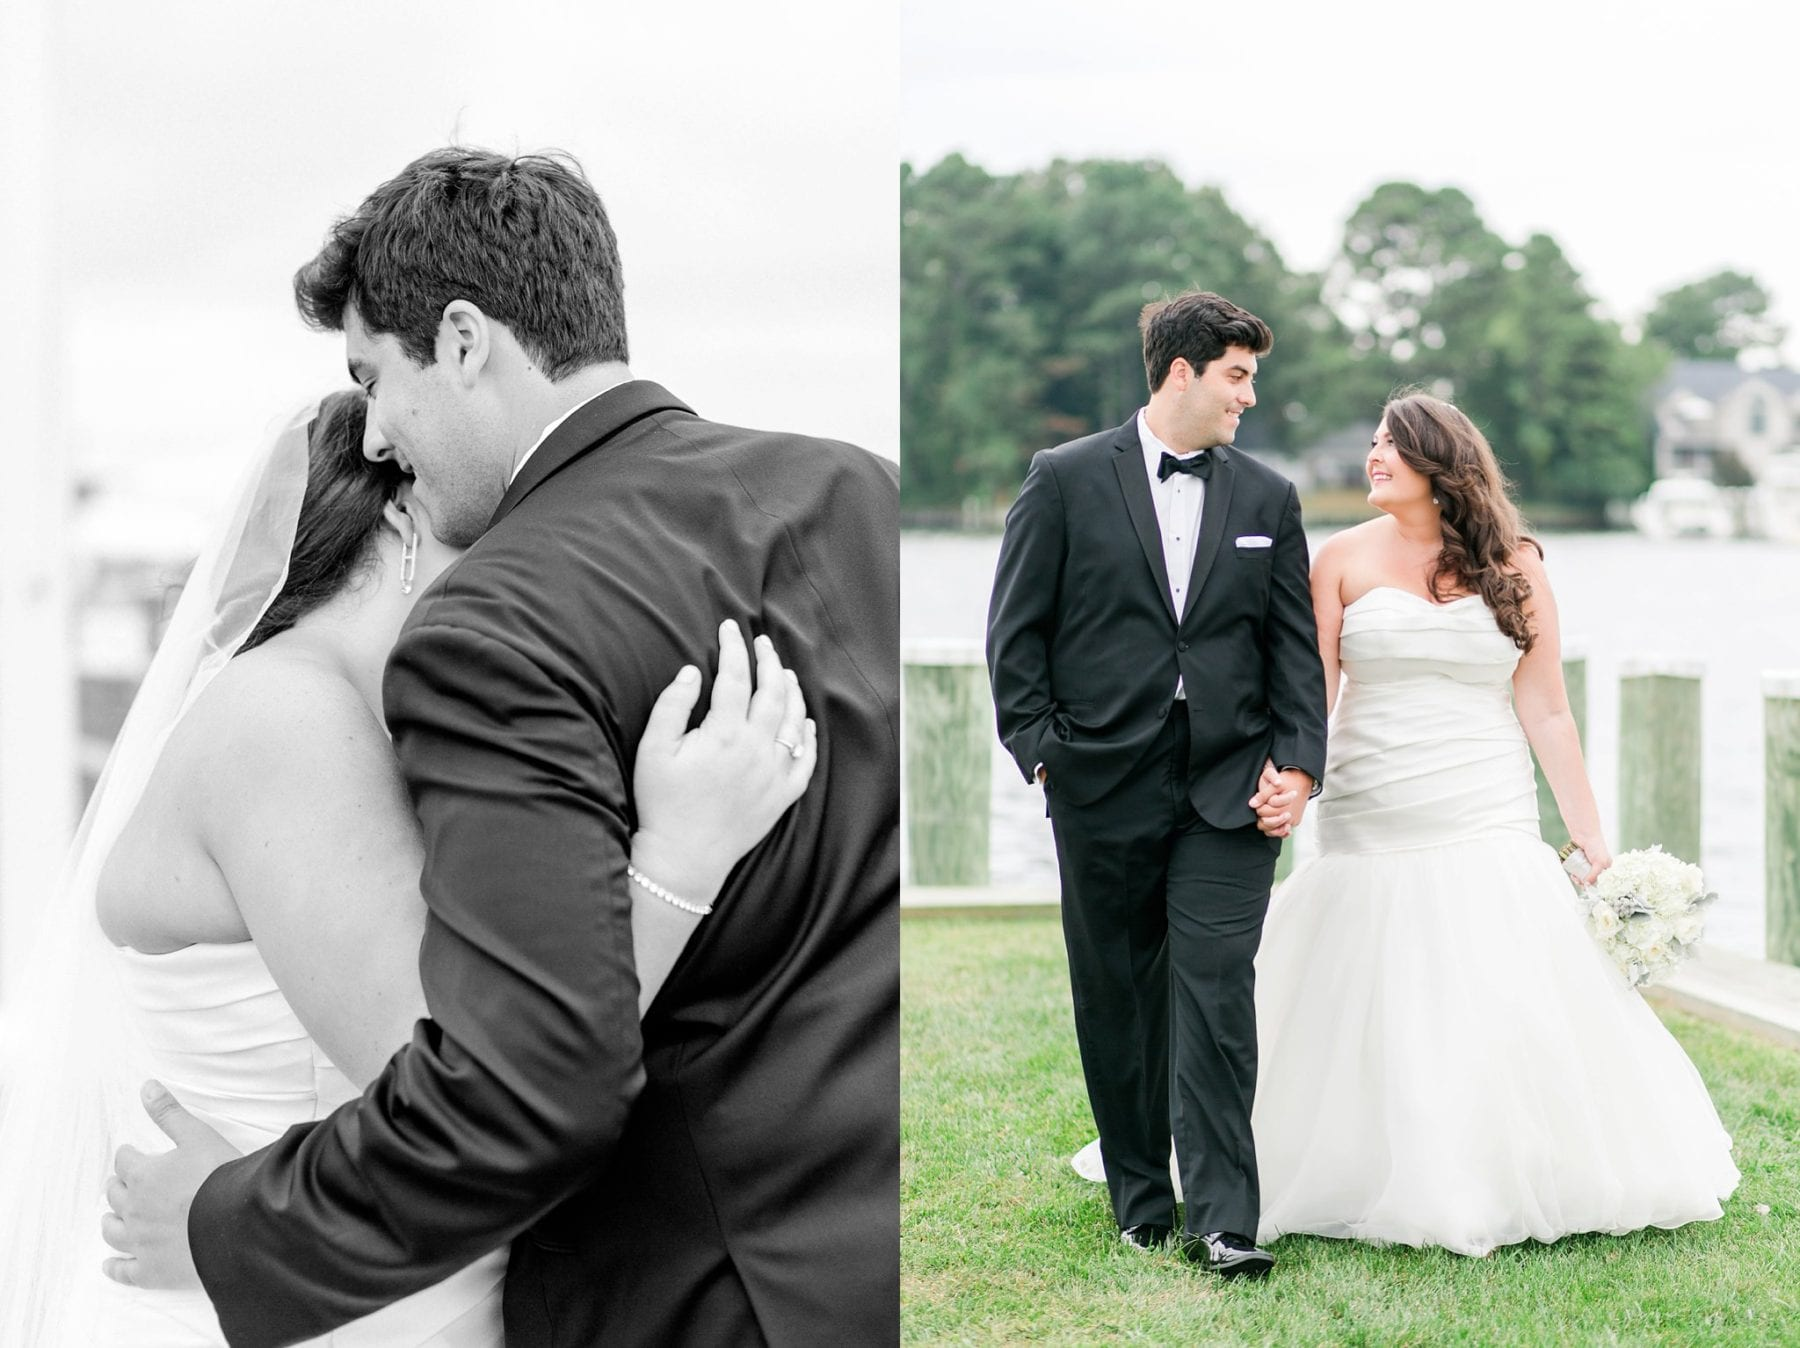 Chesapeake Bay Maritime Museum Wedding Photos Maryland Wedding Photographer Megan Kelsey Photography Halie & Mike-52.jpg